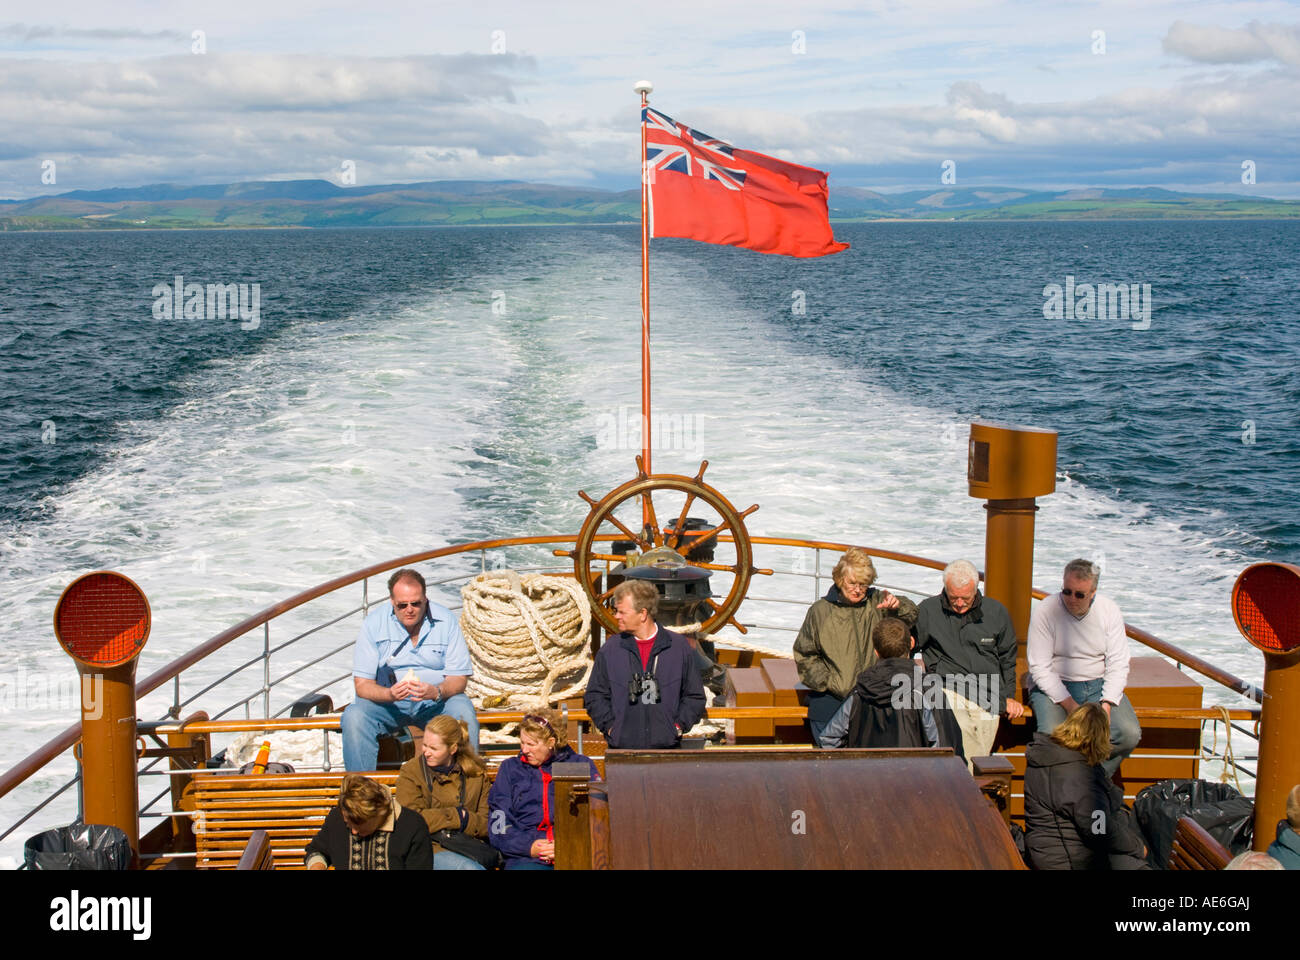 Passengers enjoy the sun on the aft deck of Paddle Steamer Waverley as she cruises on the Firth of Clyde, Scotland. Stock Photo